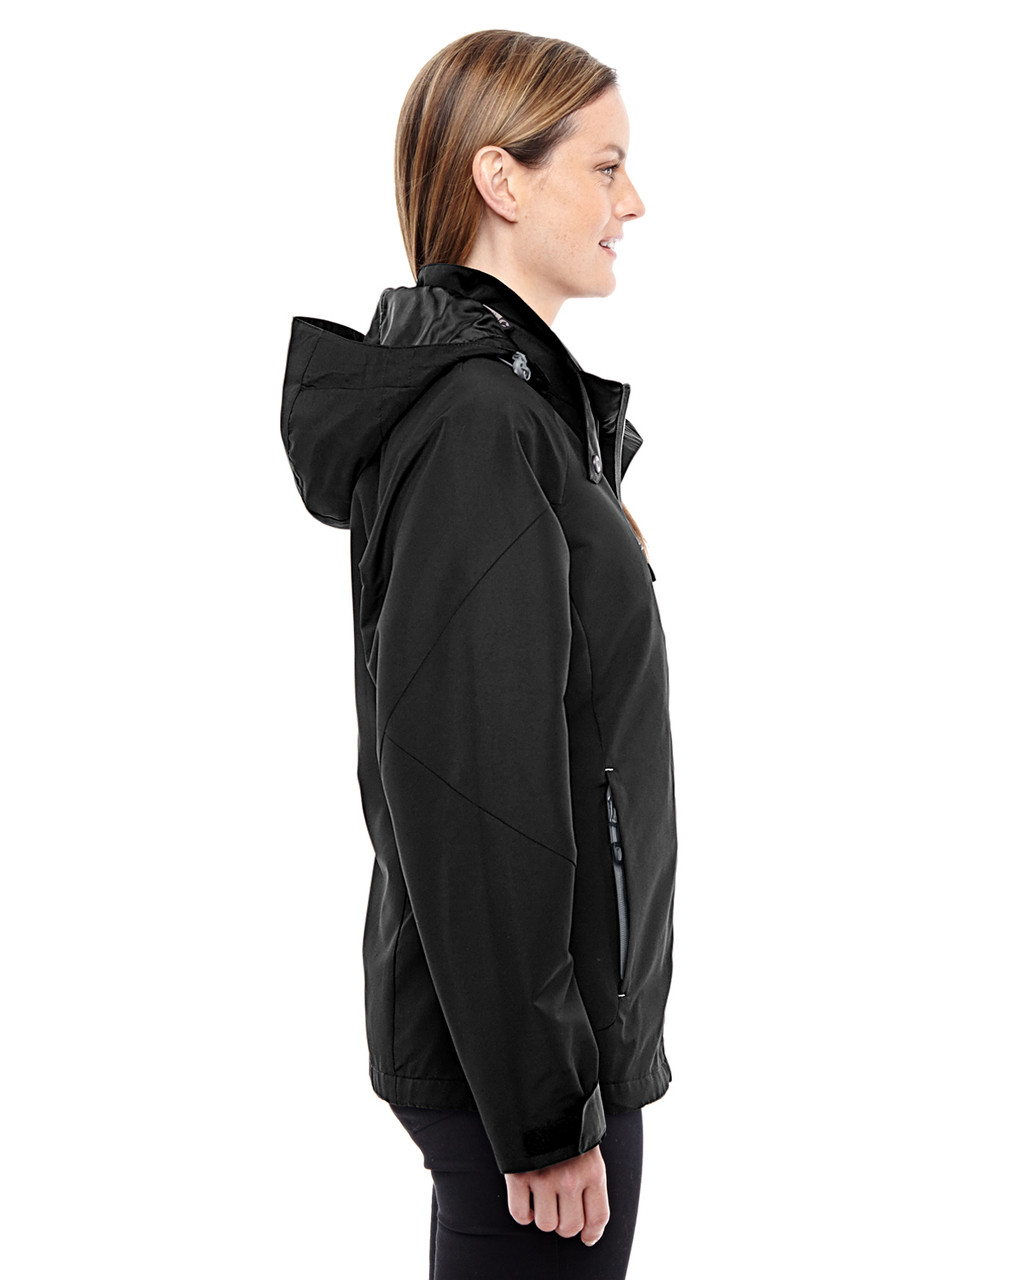 Black-Graphite-side 78226 North End Ladies' Insight Interactive Shell Jacket | Blankclothing.ca